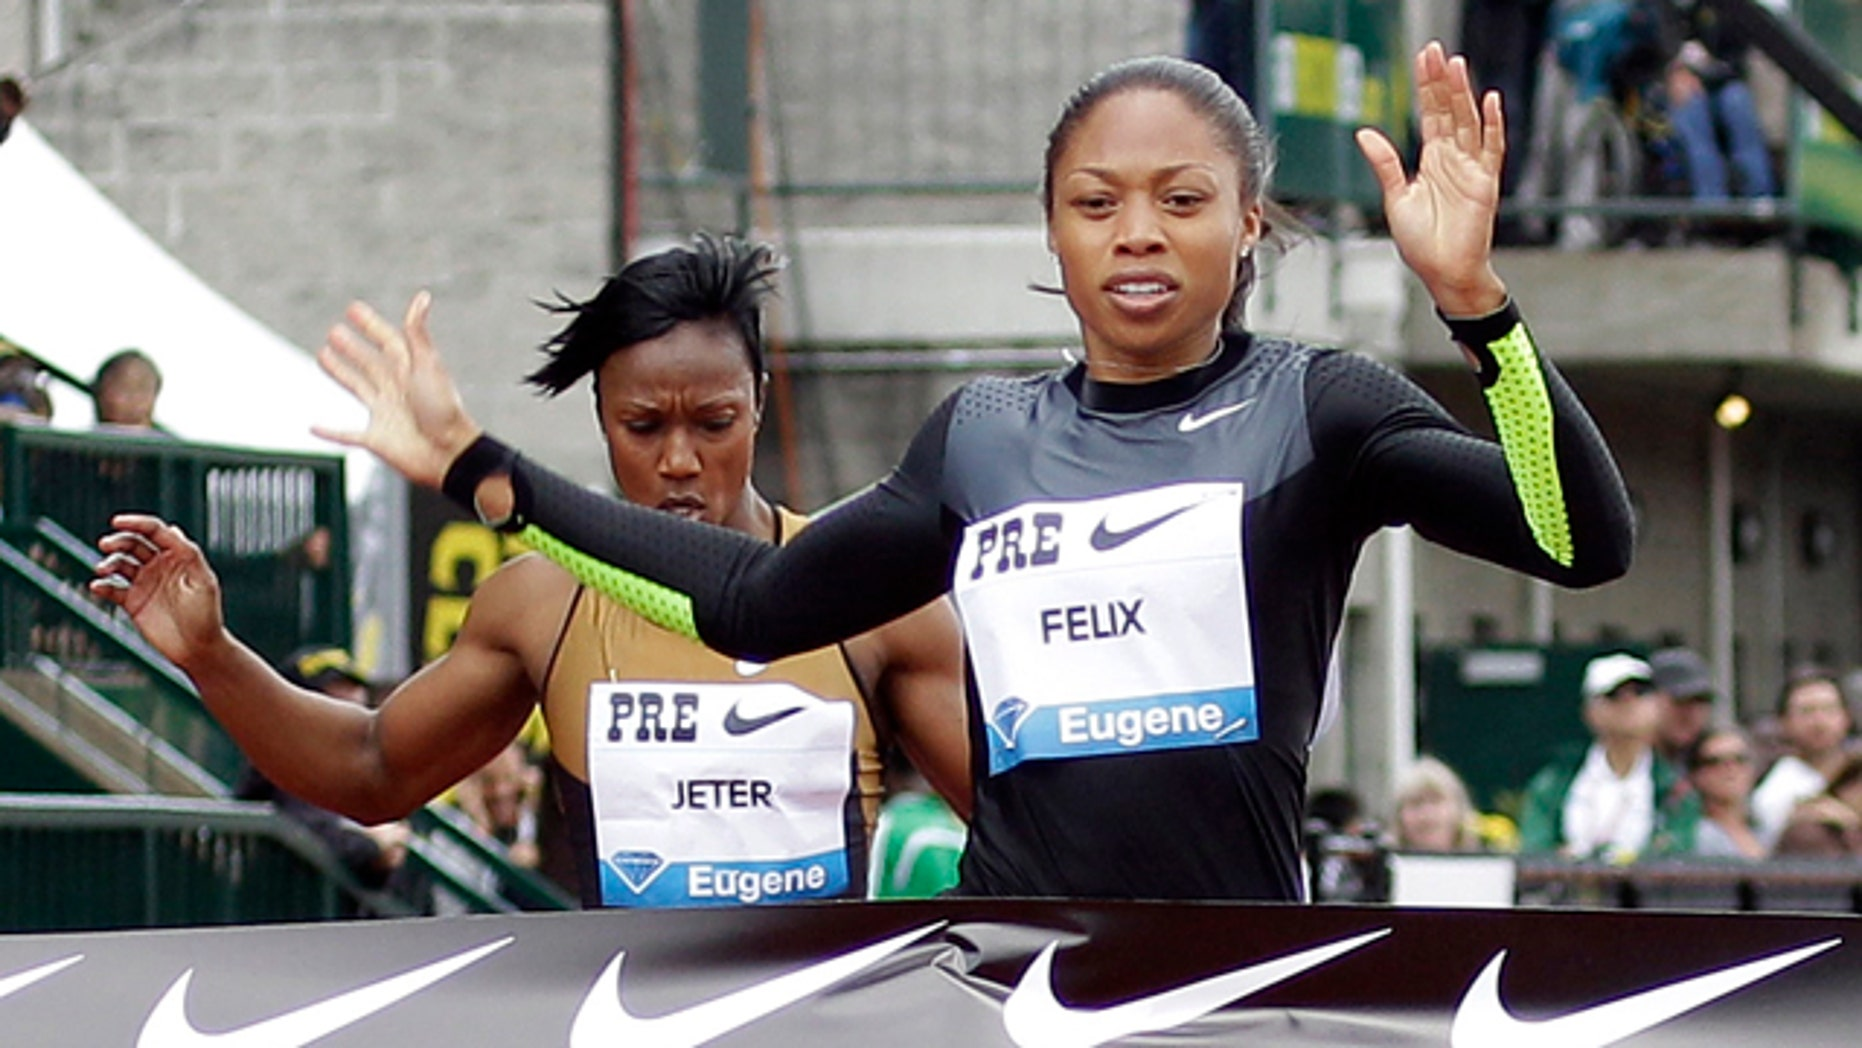 Allyson Felix will focus on the 100 and 200 meter races to maximize her chance of taking home the gold. (AP Photo)